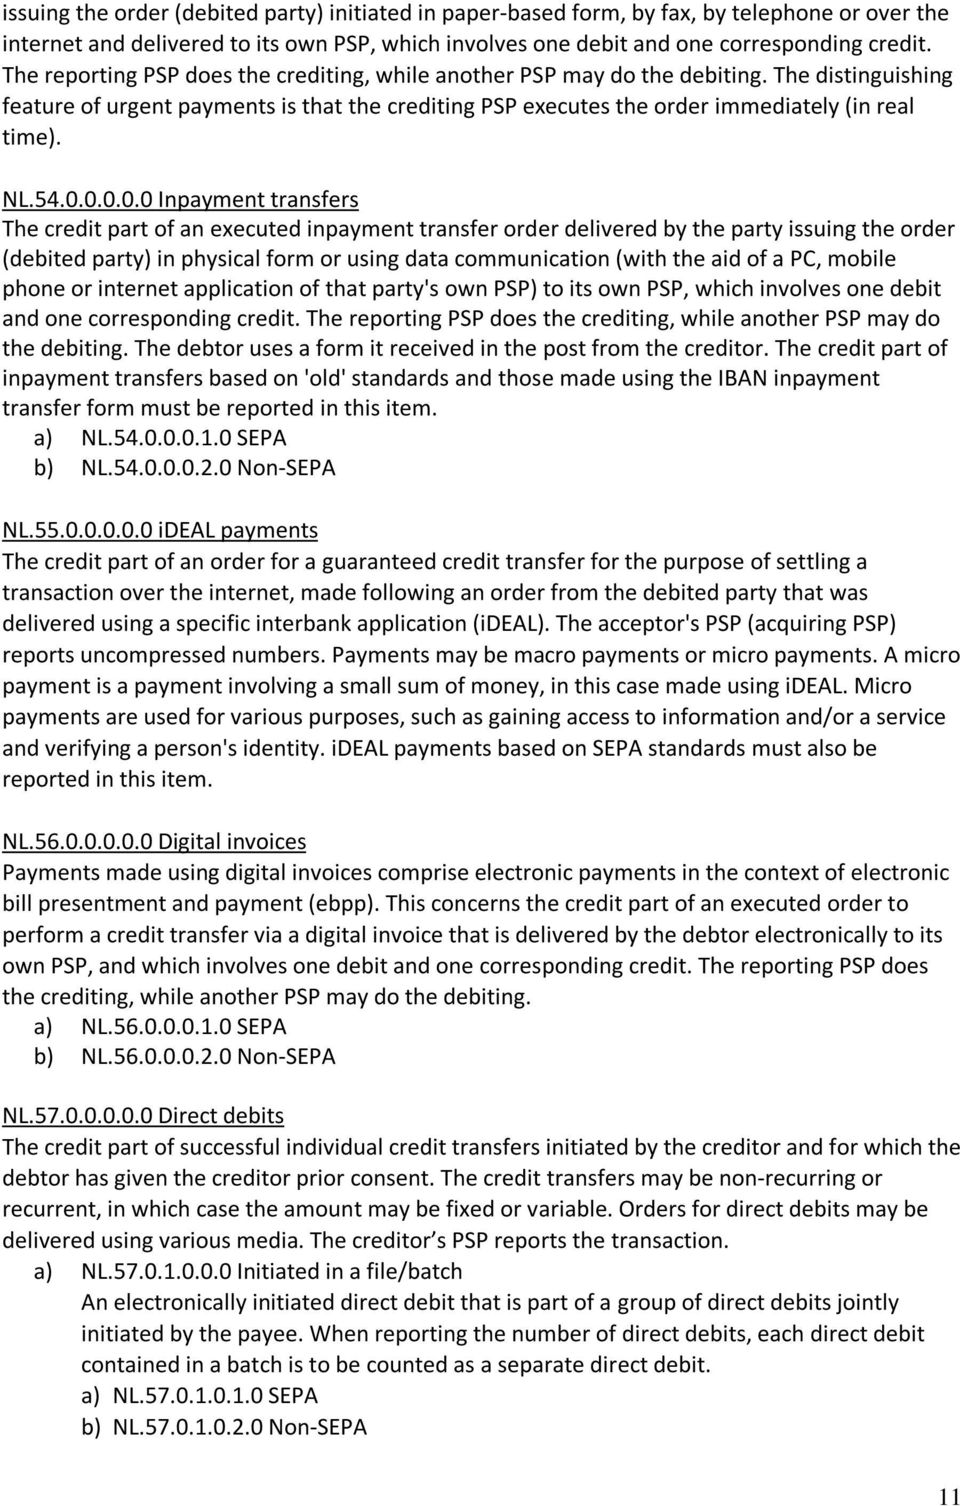 54.0.0.0.0.0 Inpayment transfers The credit part of an executed inpayment transfer order delivered by the party issuing the order (debited party) in physical form or using data communication (with